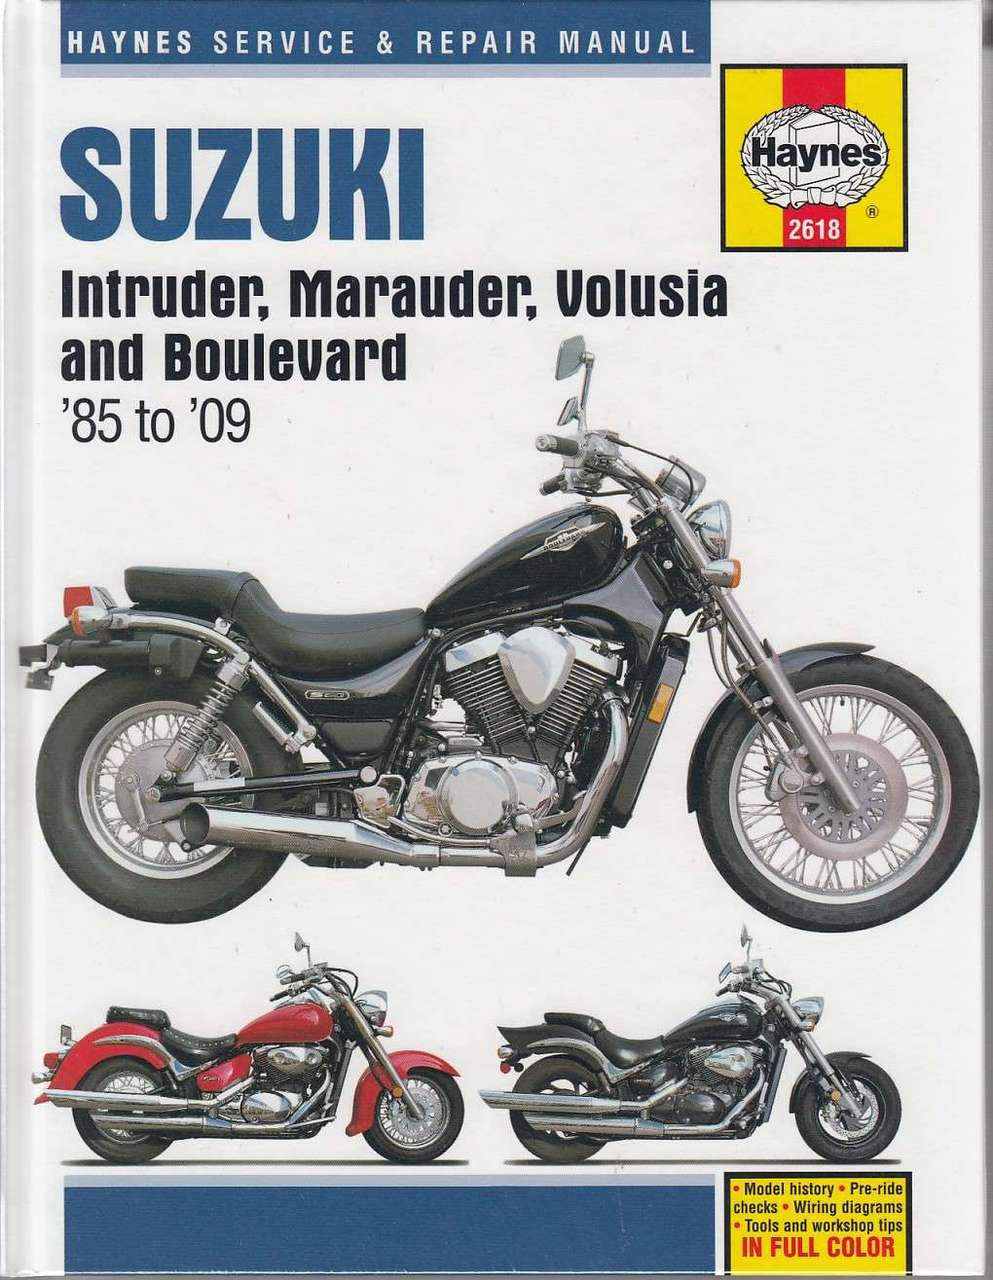 2009 suzuki c50 wiring diagram explained wiring diagrams rh dmdelectro co suzuki  boulevard m50 wiring diagram